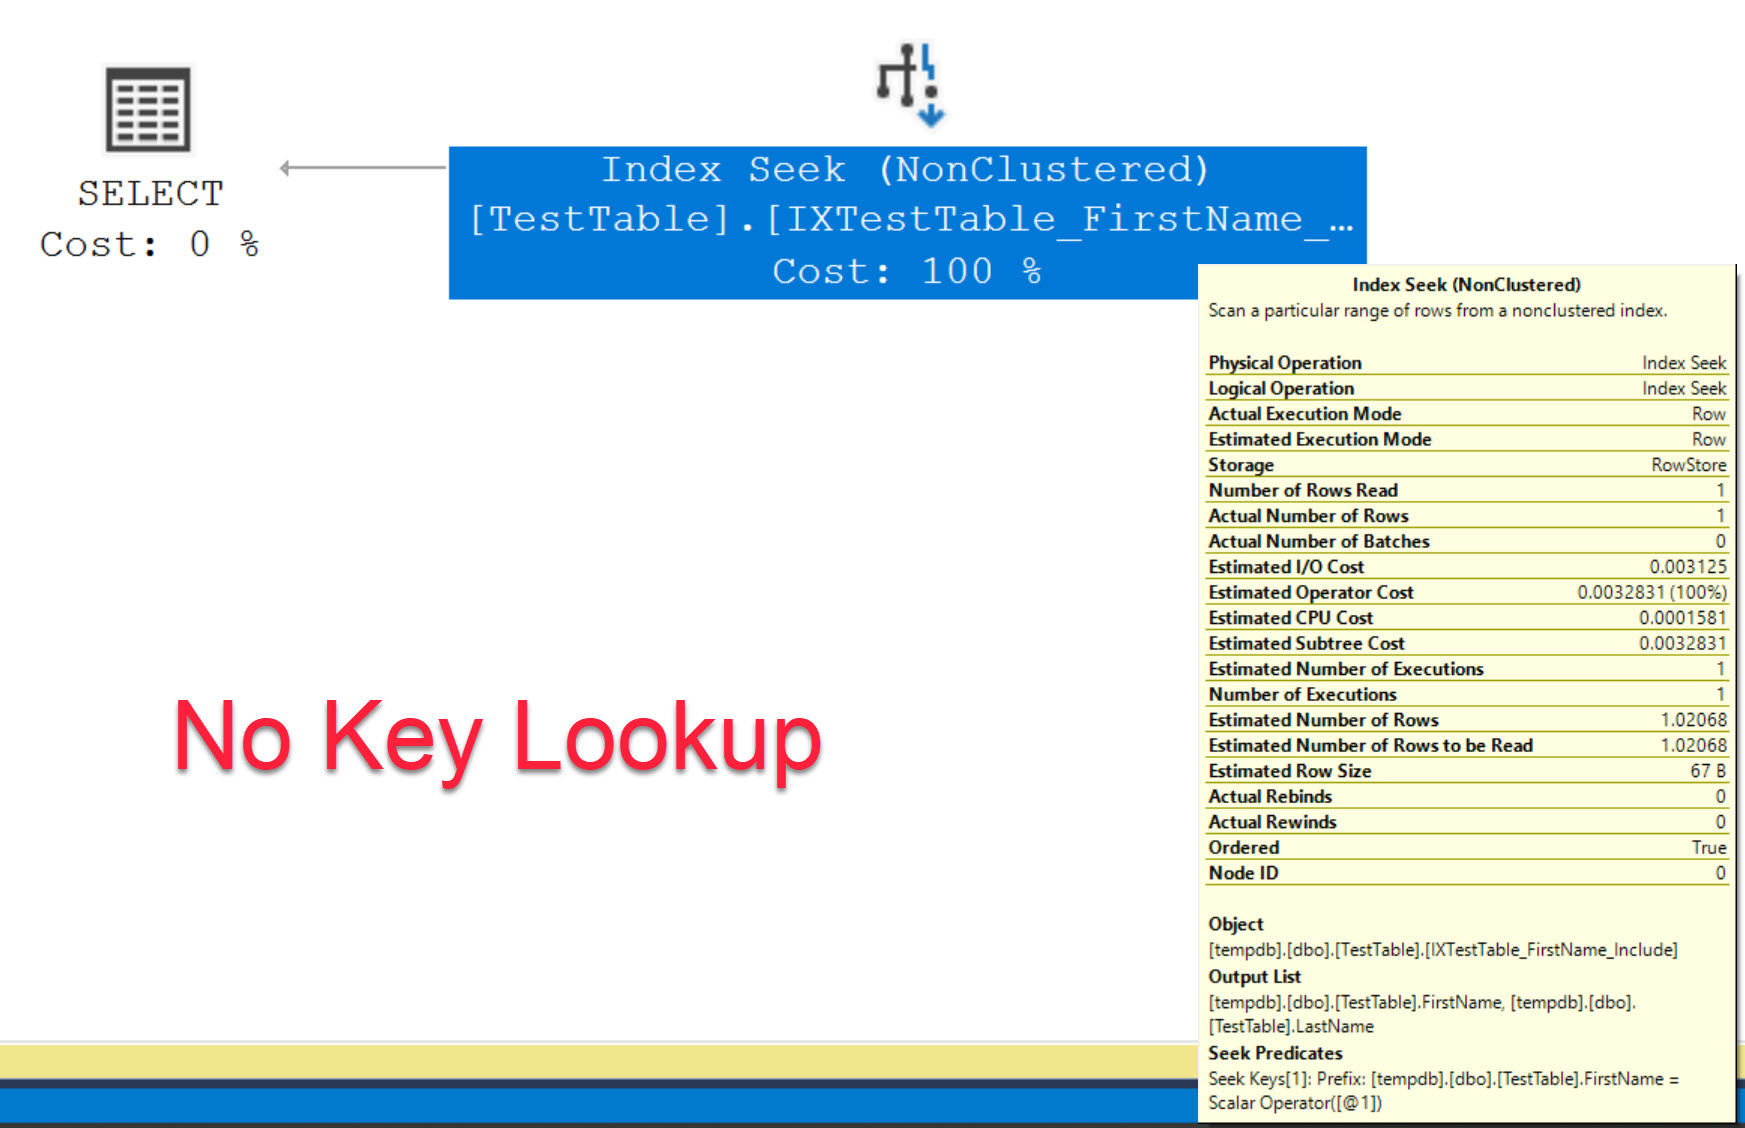 SQL SERVER - Optimize Key Lookup by Creating Index with Include Columns keylookup2